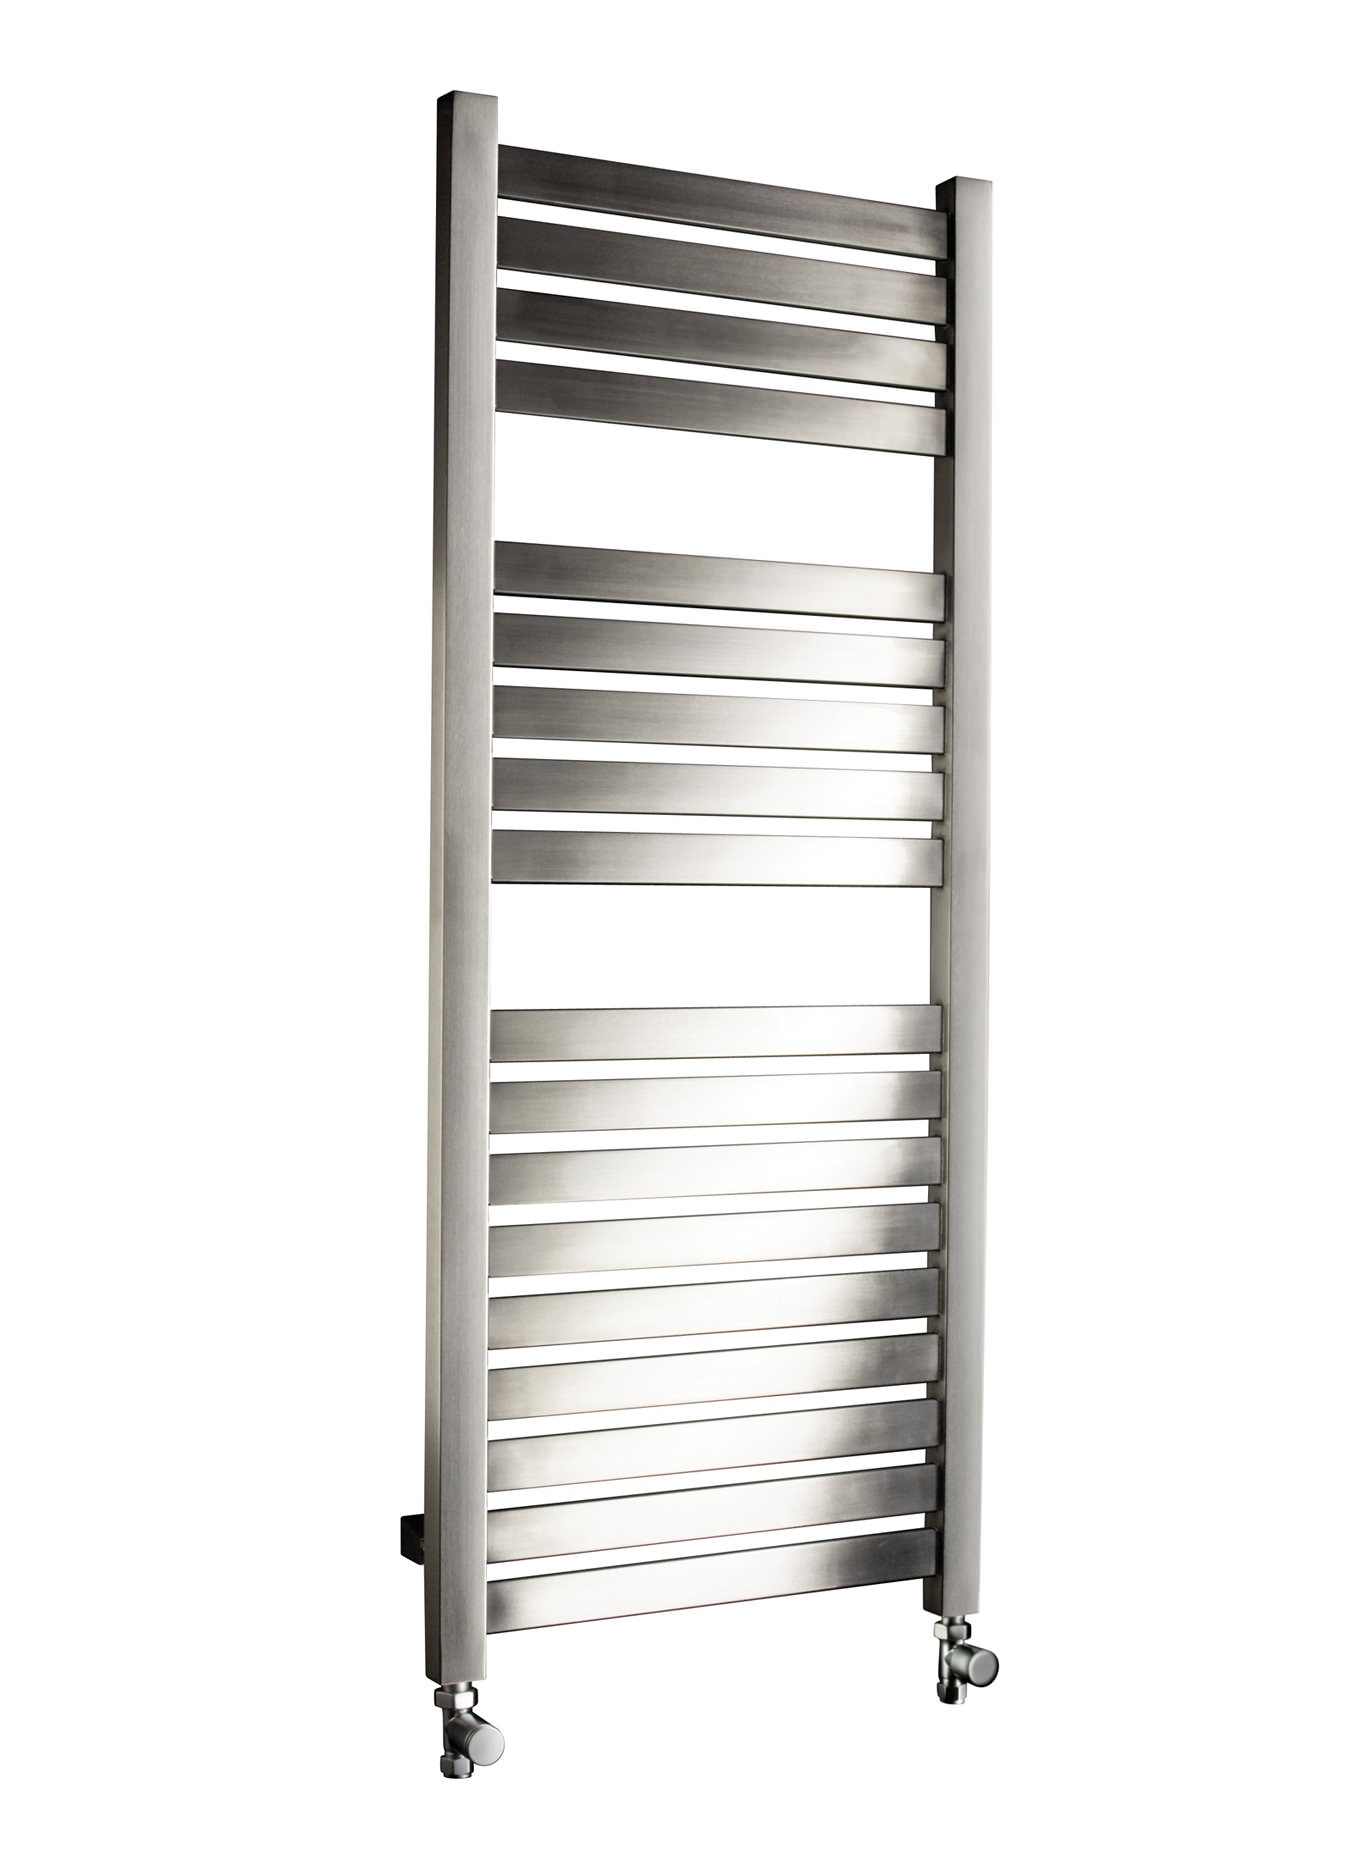 DQ Heating Alisi 500mm Wide Brushed Stainless Steel Heated